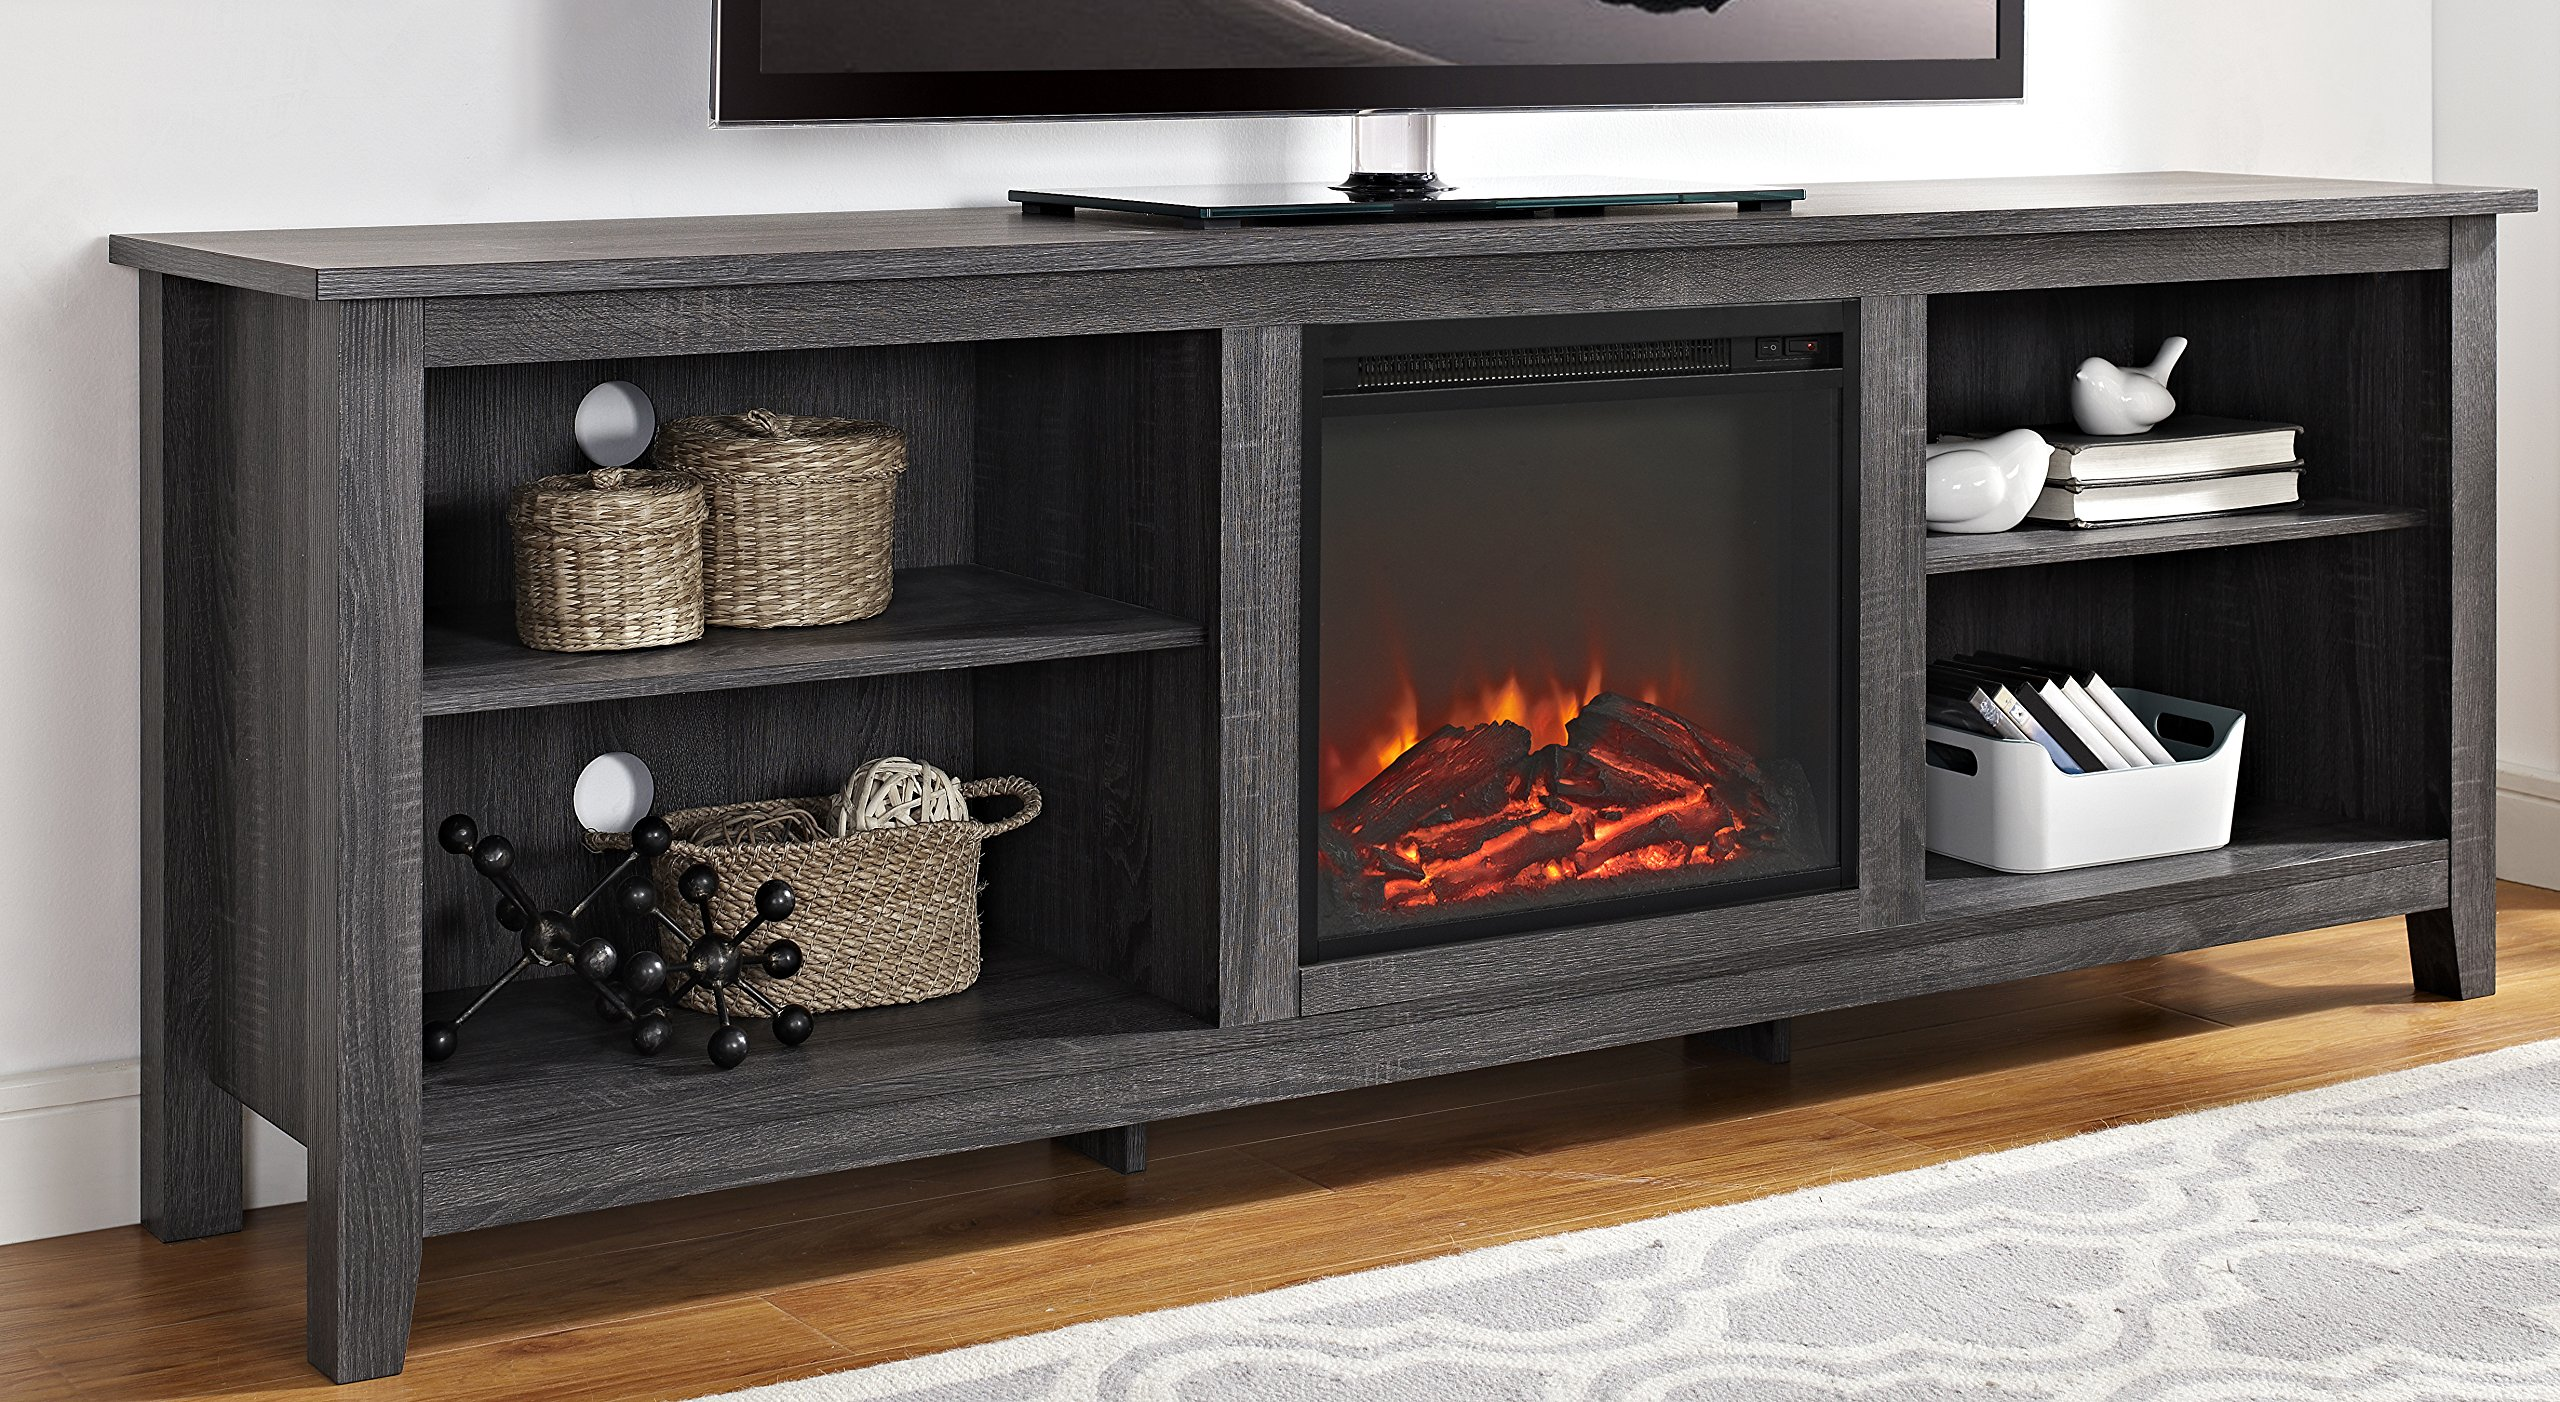 WE Furniture 70'' Wood Media TV Stand Console with Fireplace - Charcoal